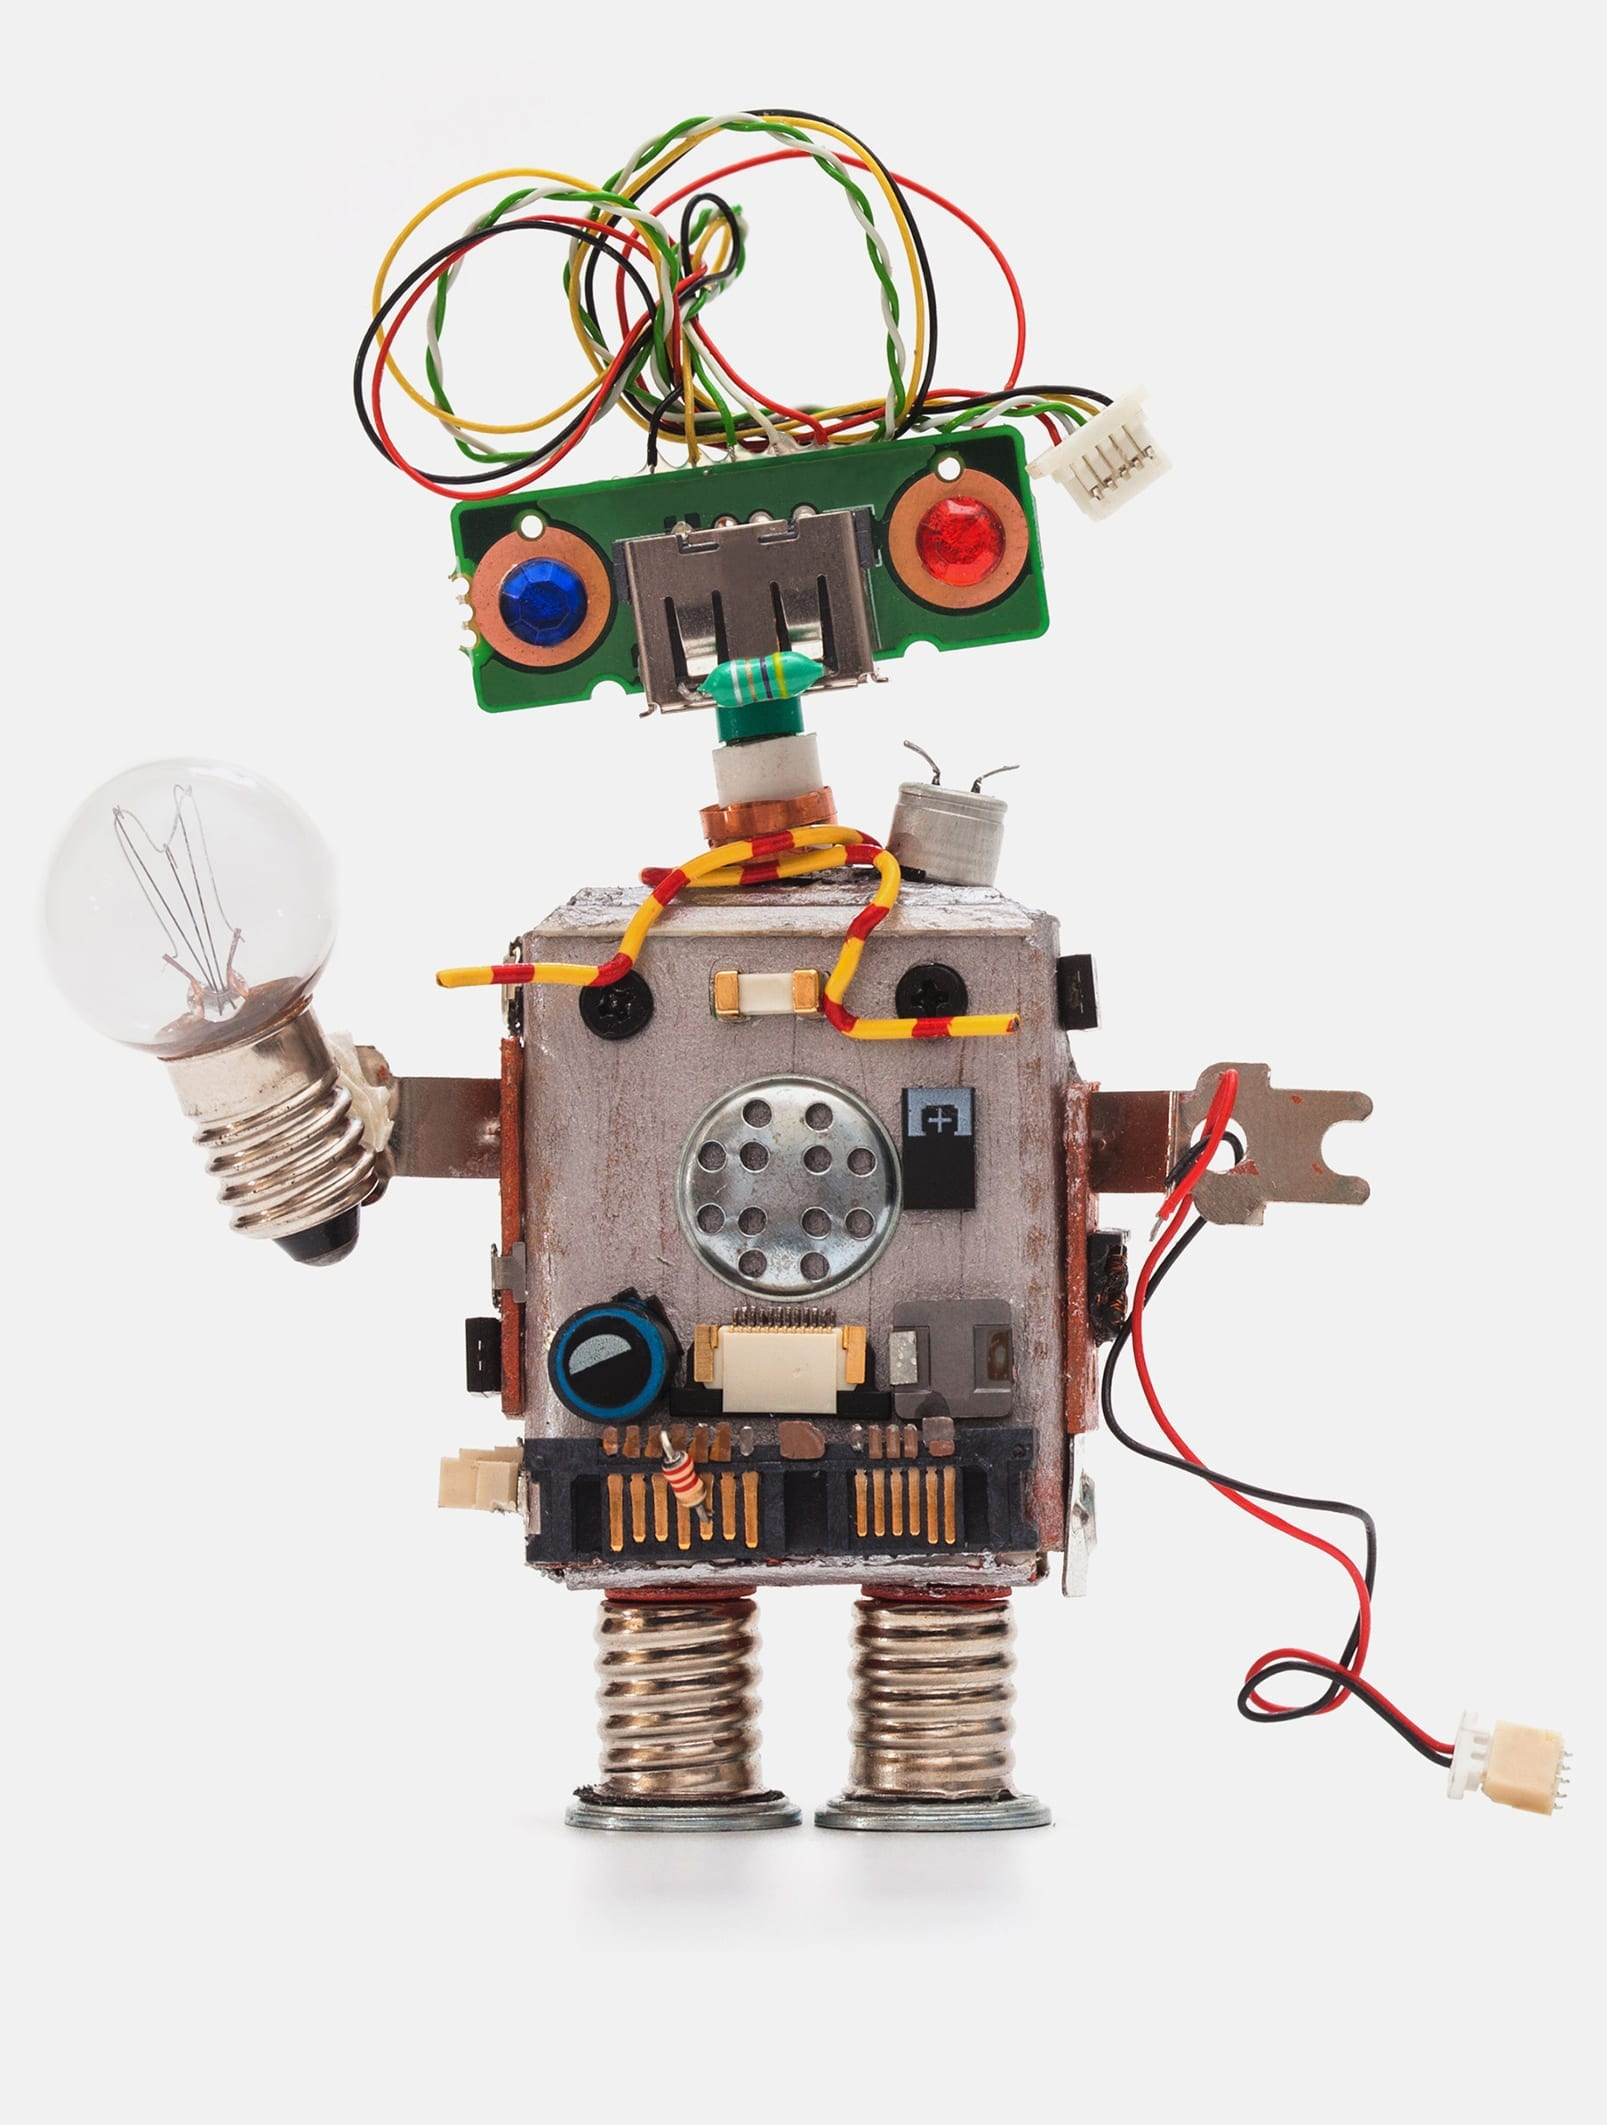 hight resolution of oops 404 error page not found futuristic robot concept with electrical wire hairstyle circuits socket chip toy mechanism funny head colored eyes